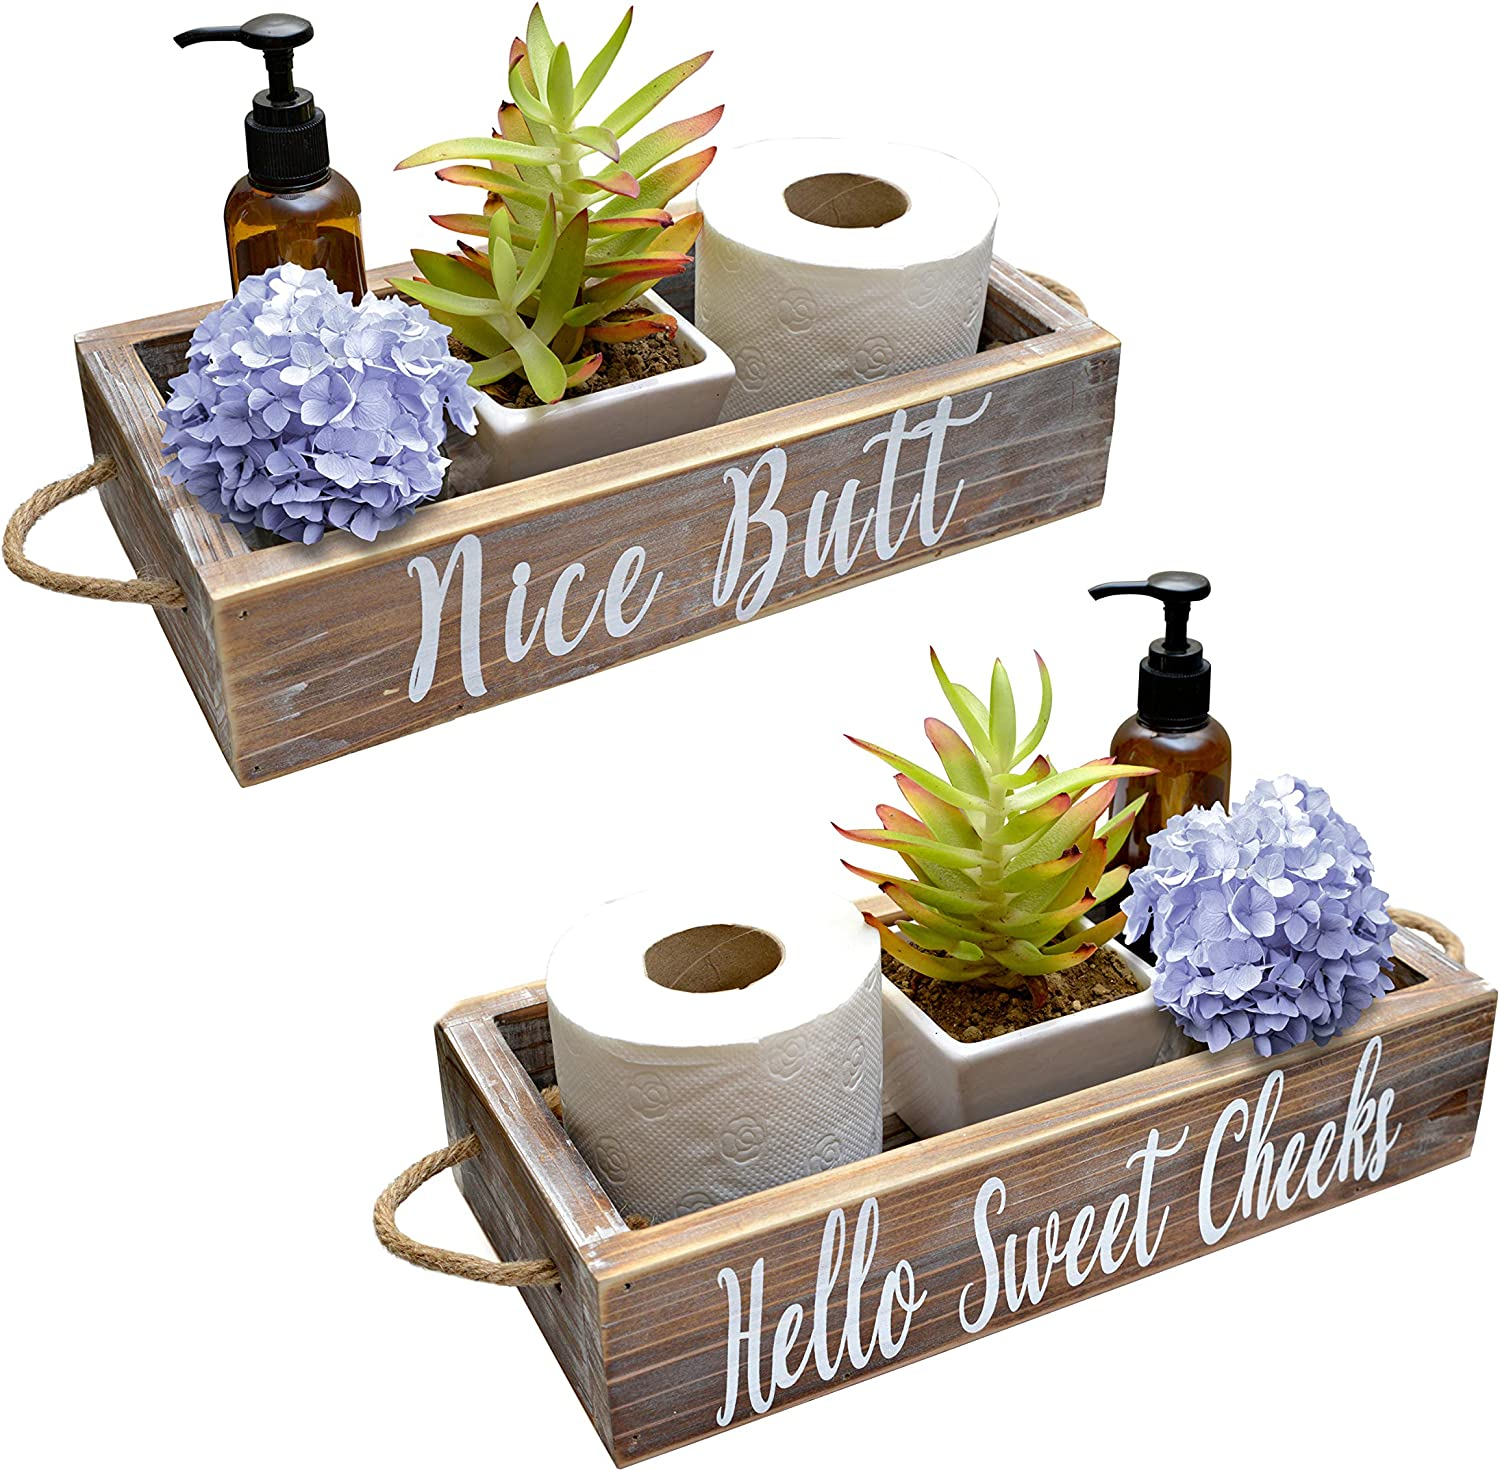 Nice Butt Bathroom Decor Box, 2 Sides with Funny Sayings - Funny Toilet Paper Holder Perfect for Farmhouse Bathroom Decor, Toilet Paper Storage, Rustic Bathroom Decor, Diaper Organizer (Whitewashed)